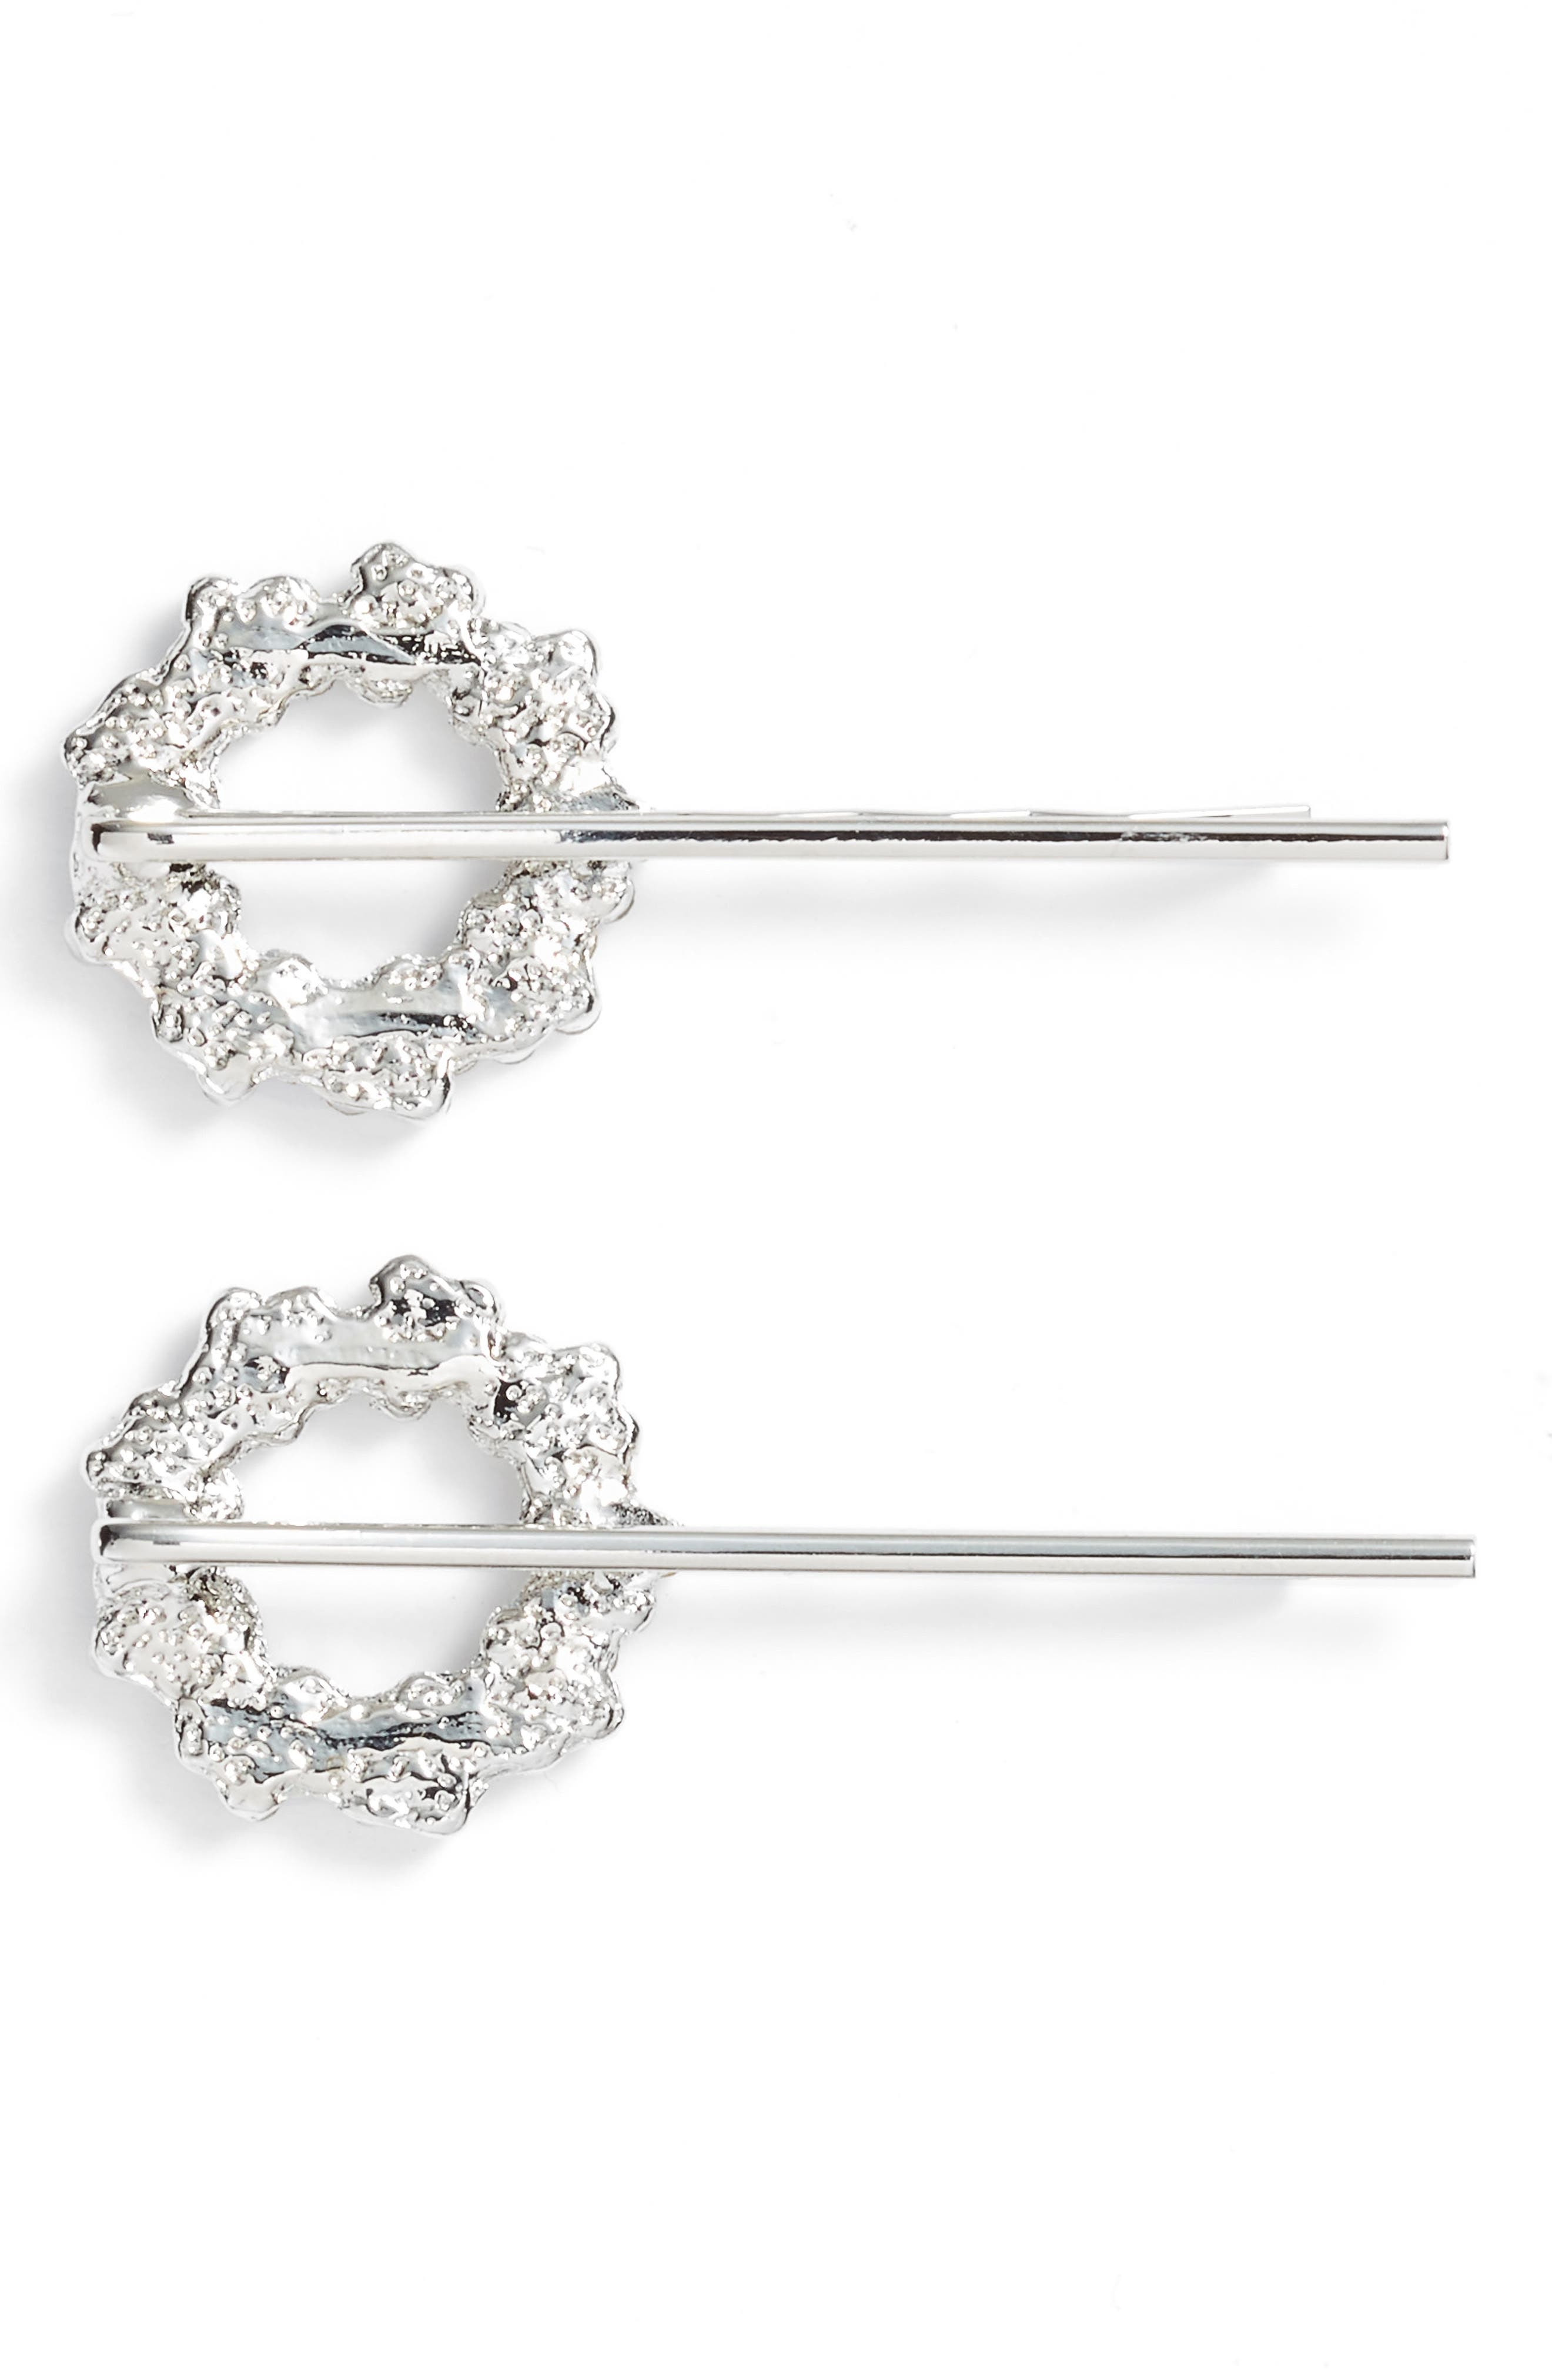 Set of 2 Crystal Flower Wreath Bobby Pins,                             Alternate thumbnail 3, color,                             044